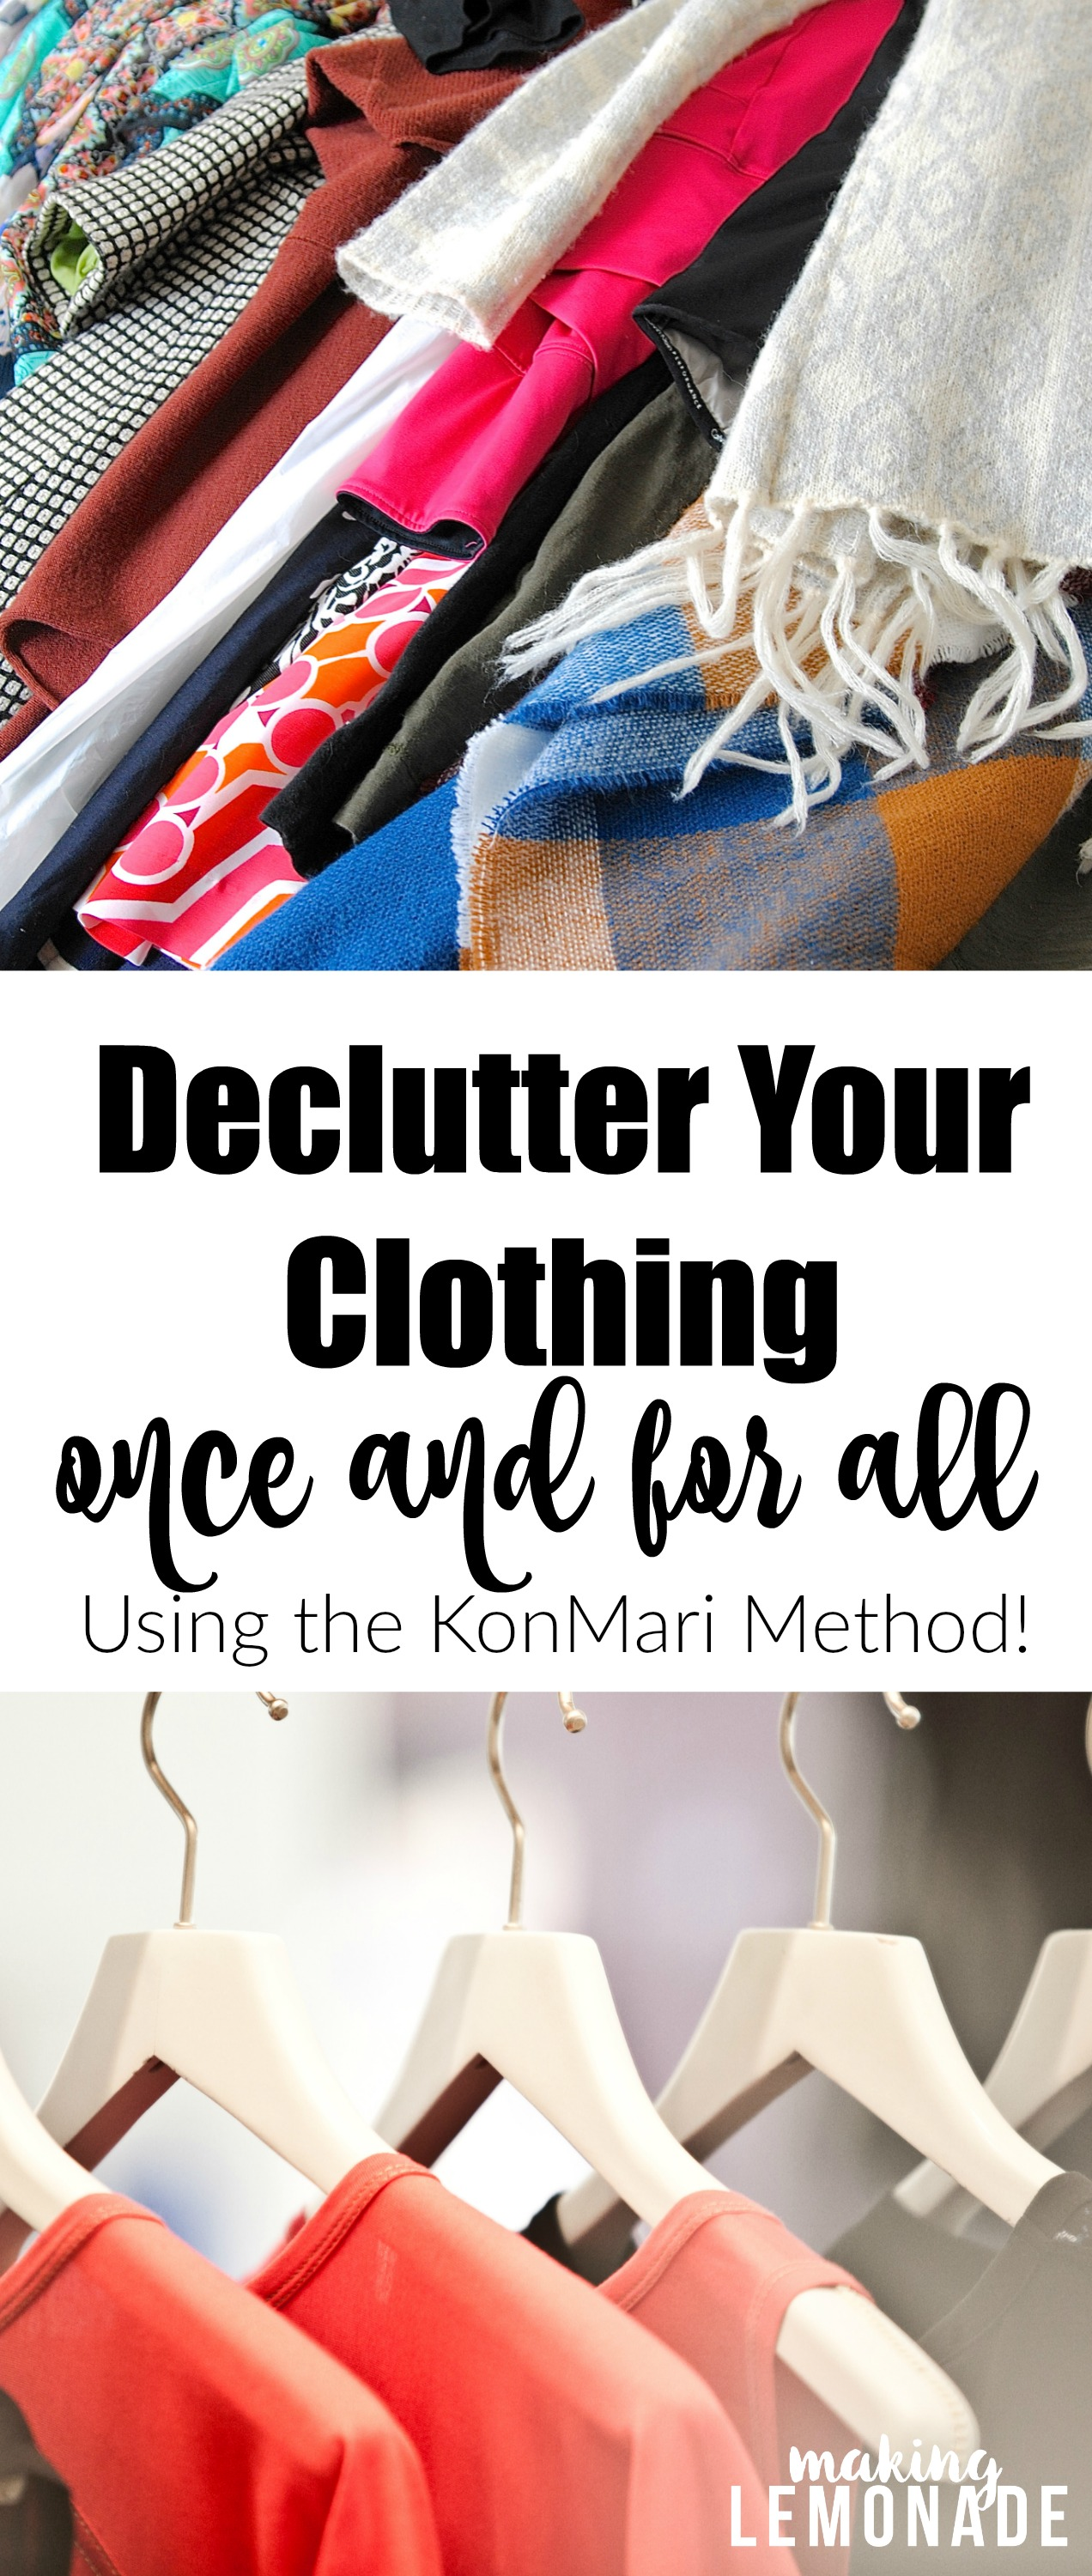 10 Steps To Declutter Your Clothing Once And For All The Konmari Method